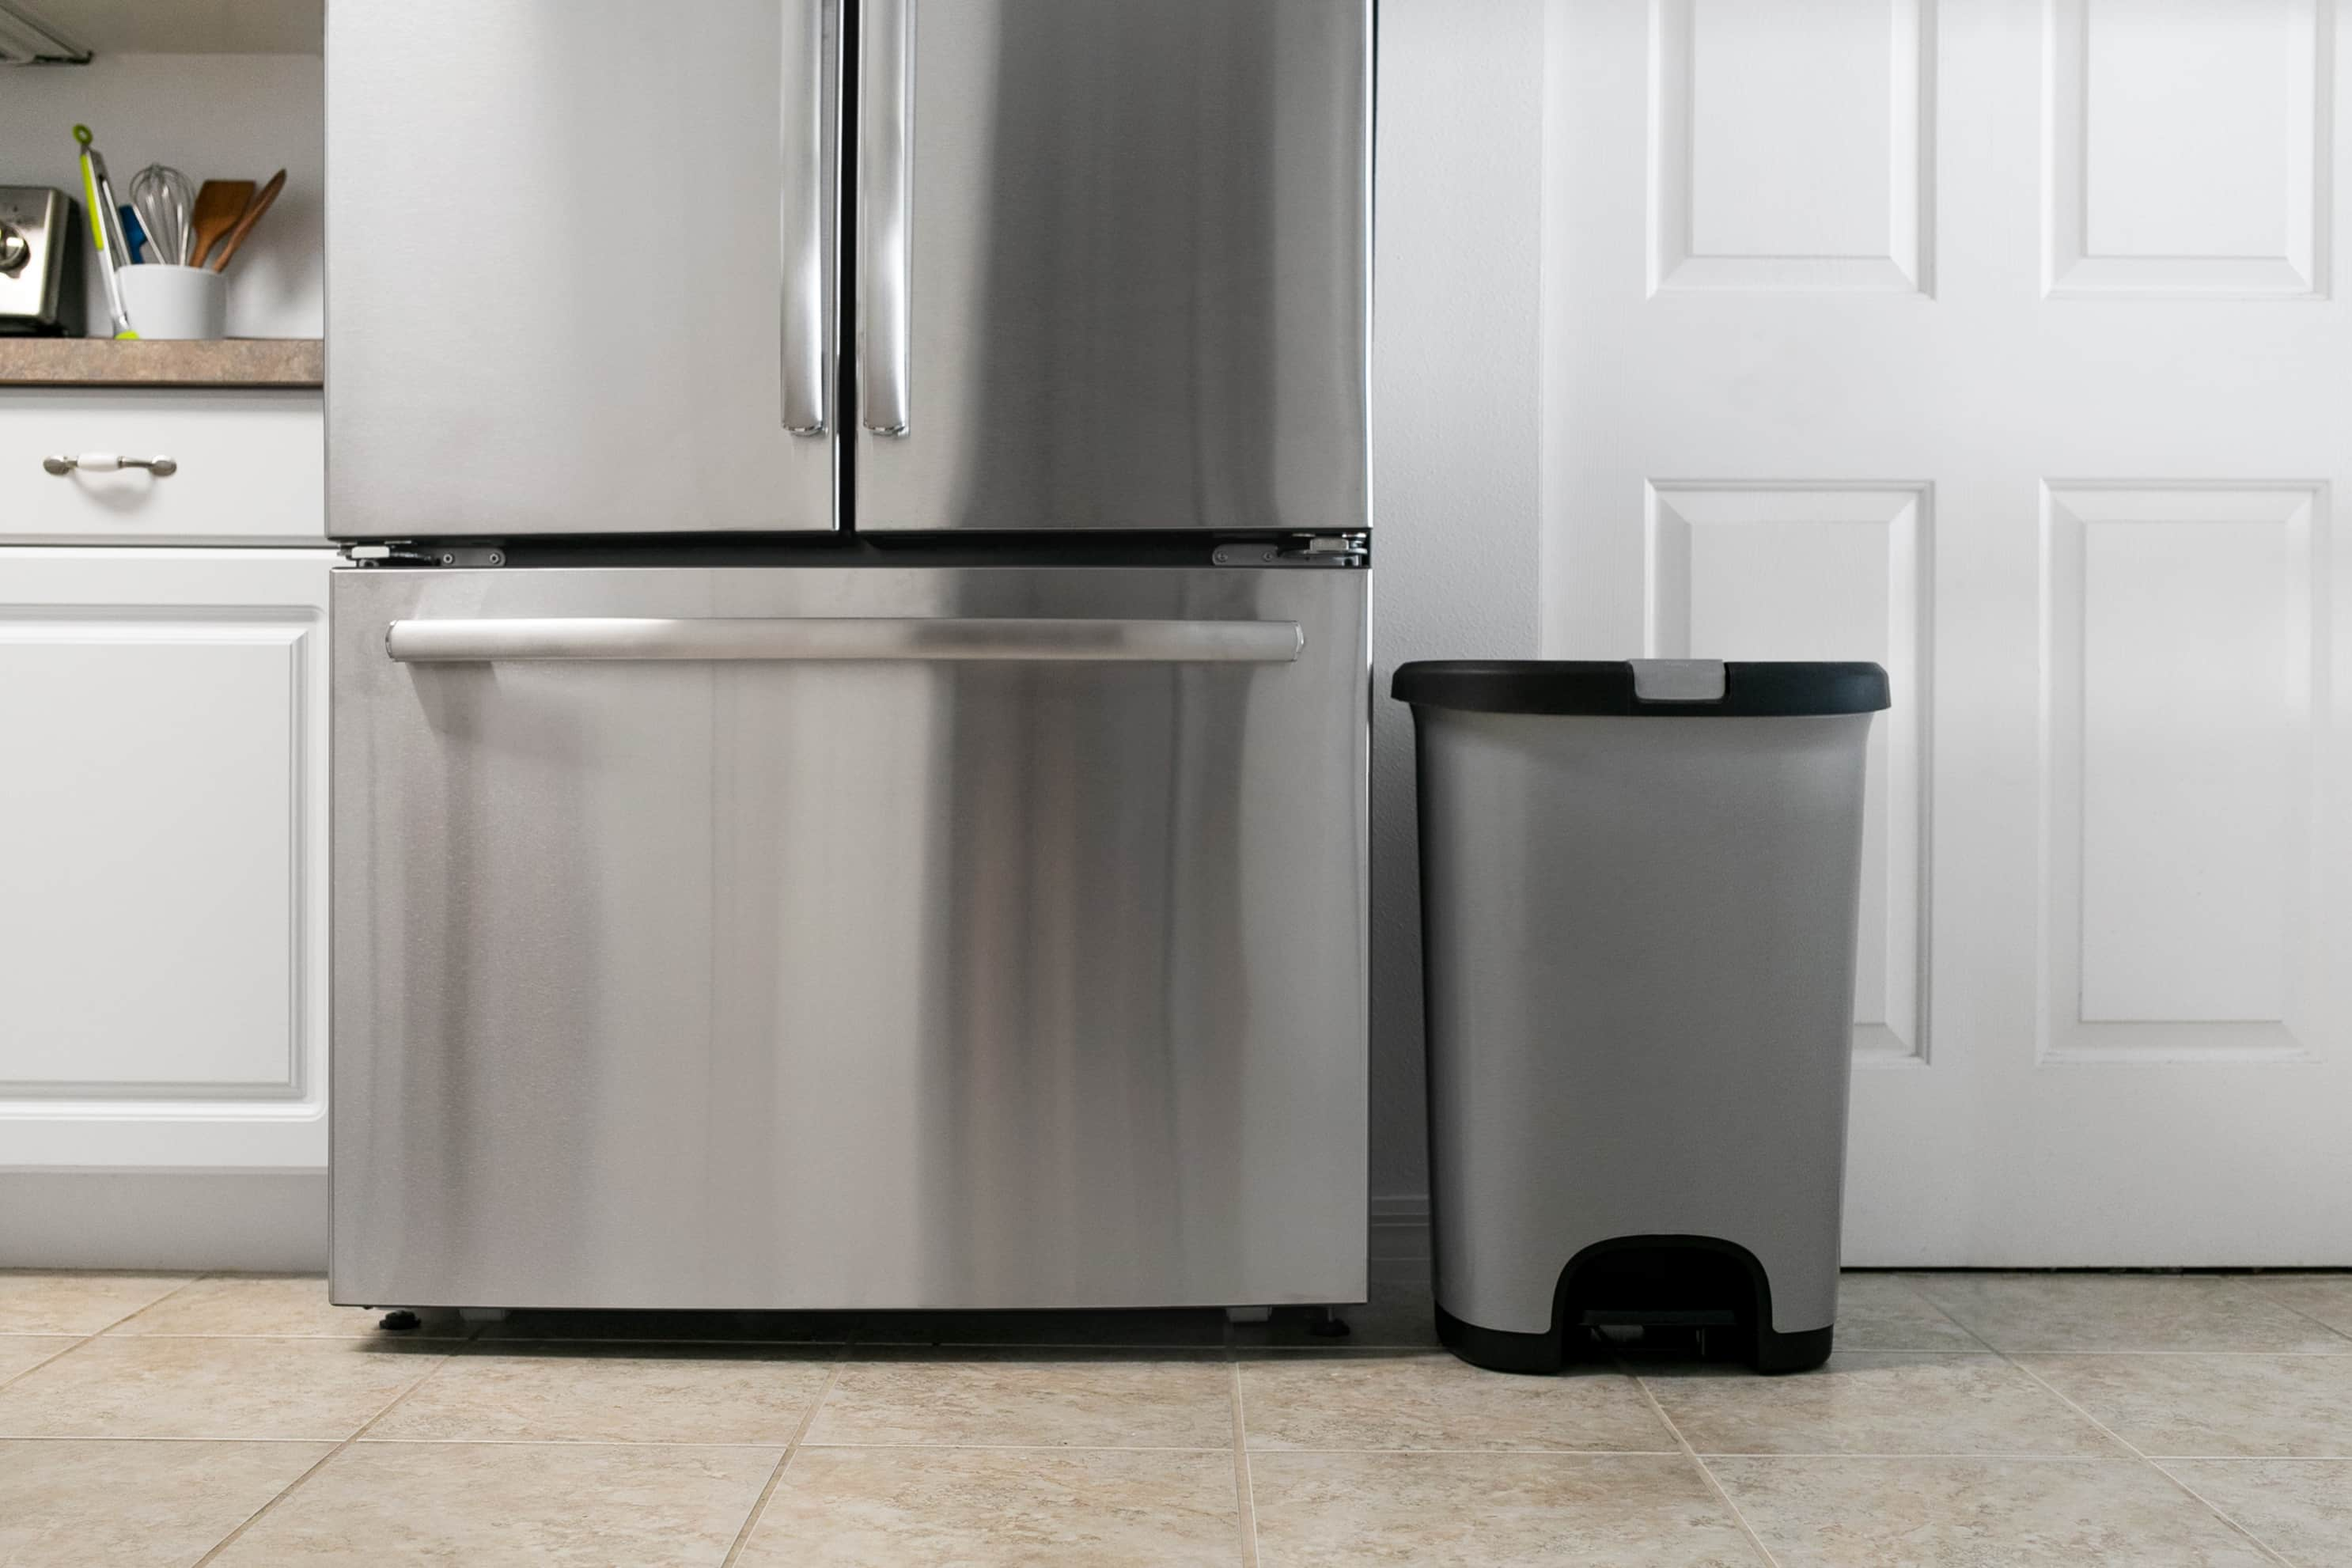 Why I'm Obsessed With This Oh-So-Basic Trash Can